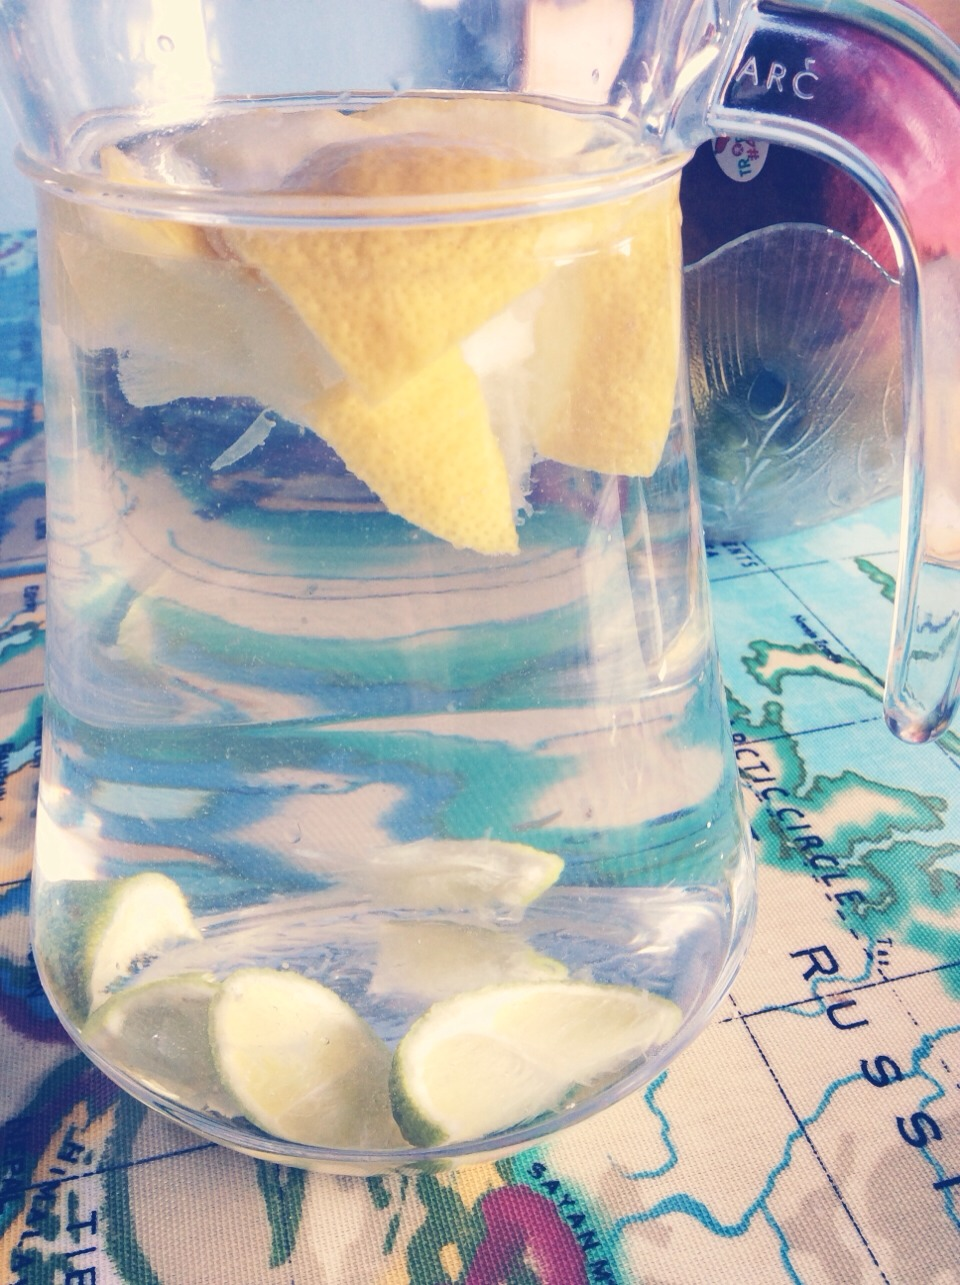 Add 1/2 a jug of water to 1/2 a jug of vodka. Squeeze in some lemons and limes